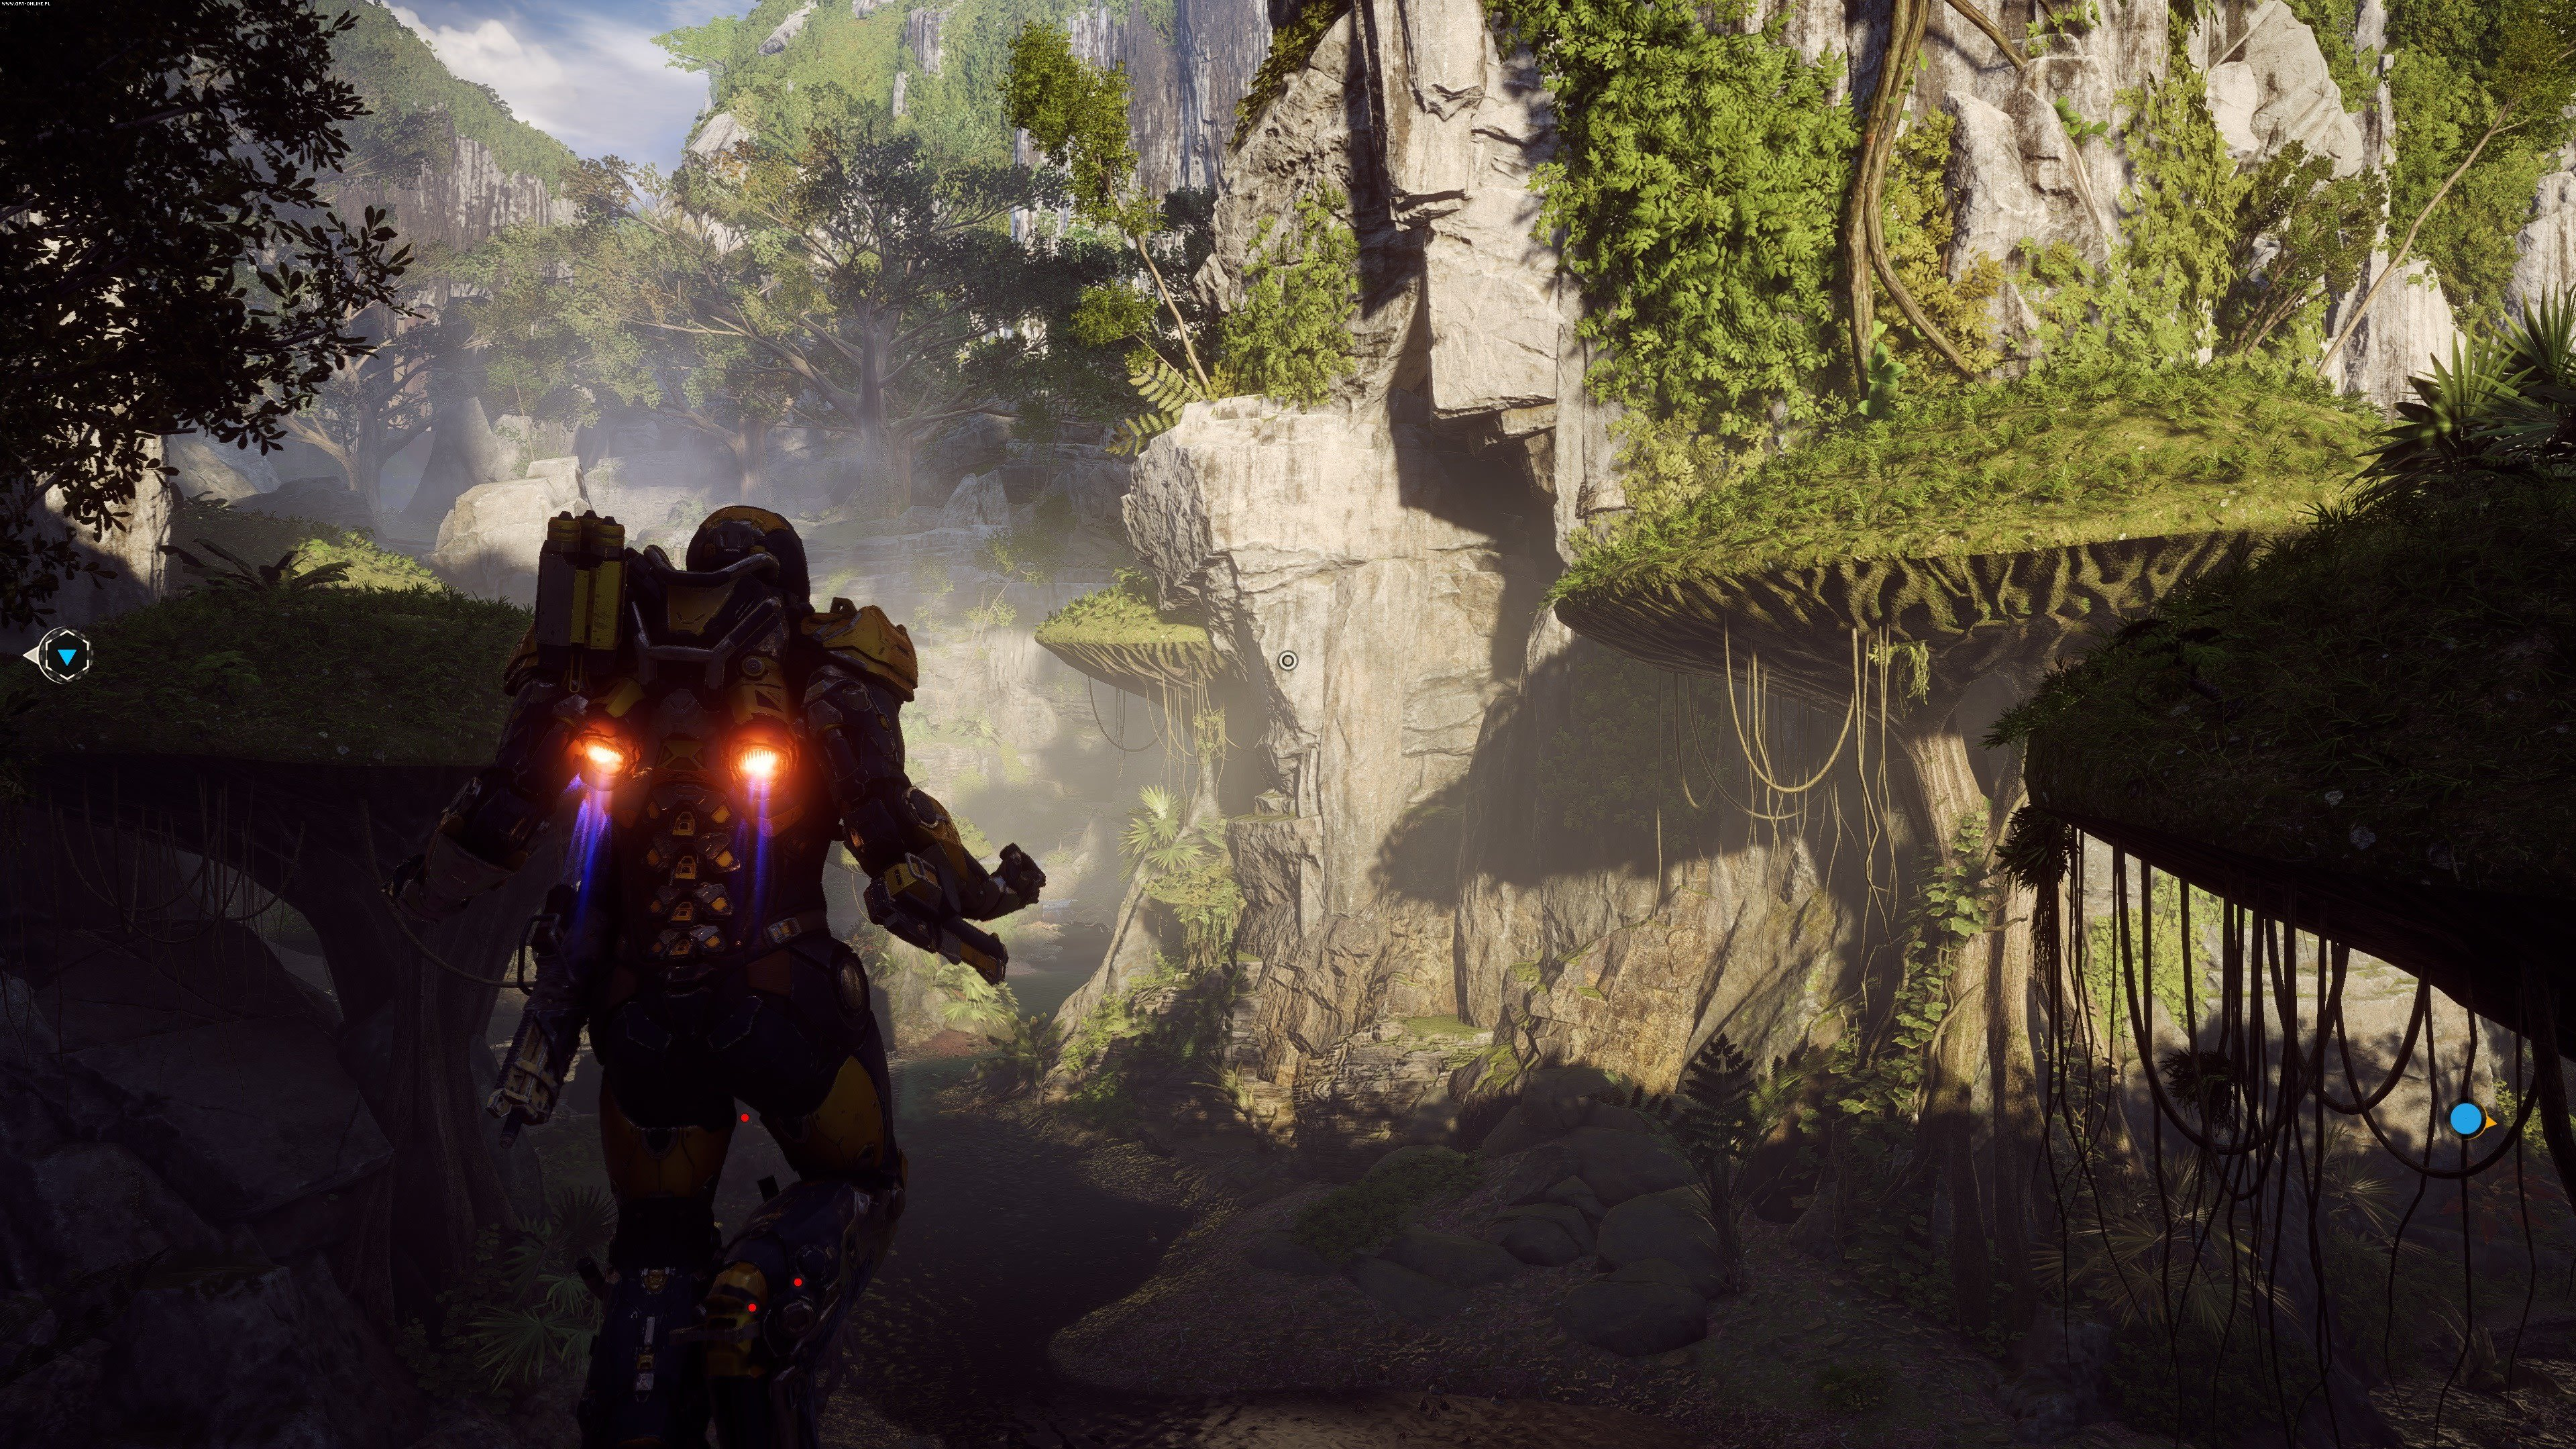 Anthem PC, PS4, XONE Gry Screen 7/52, BioWare Corporation, Electronic Arts Inc.